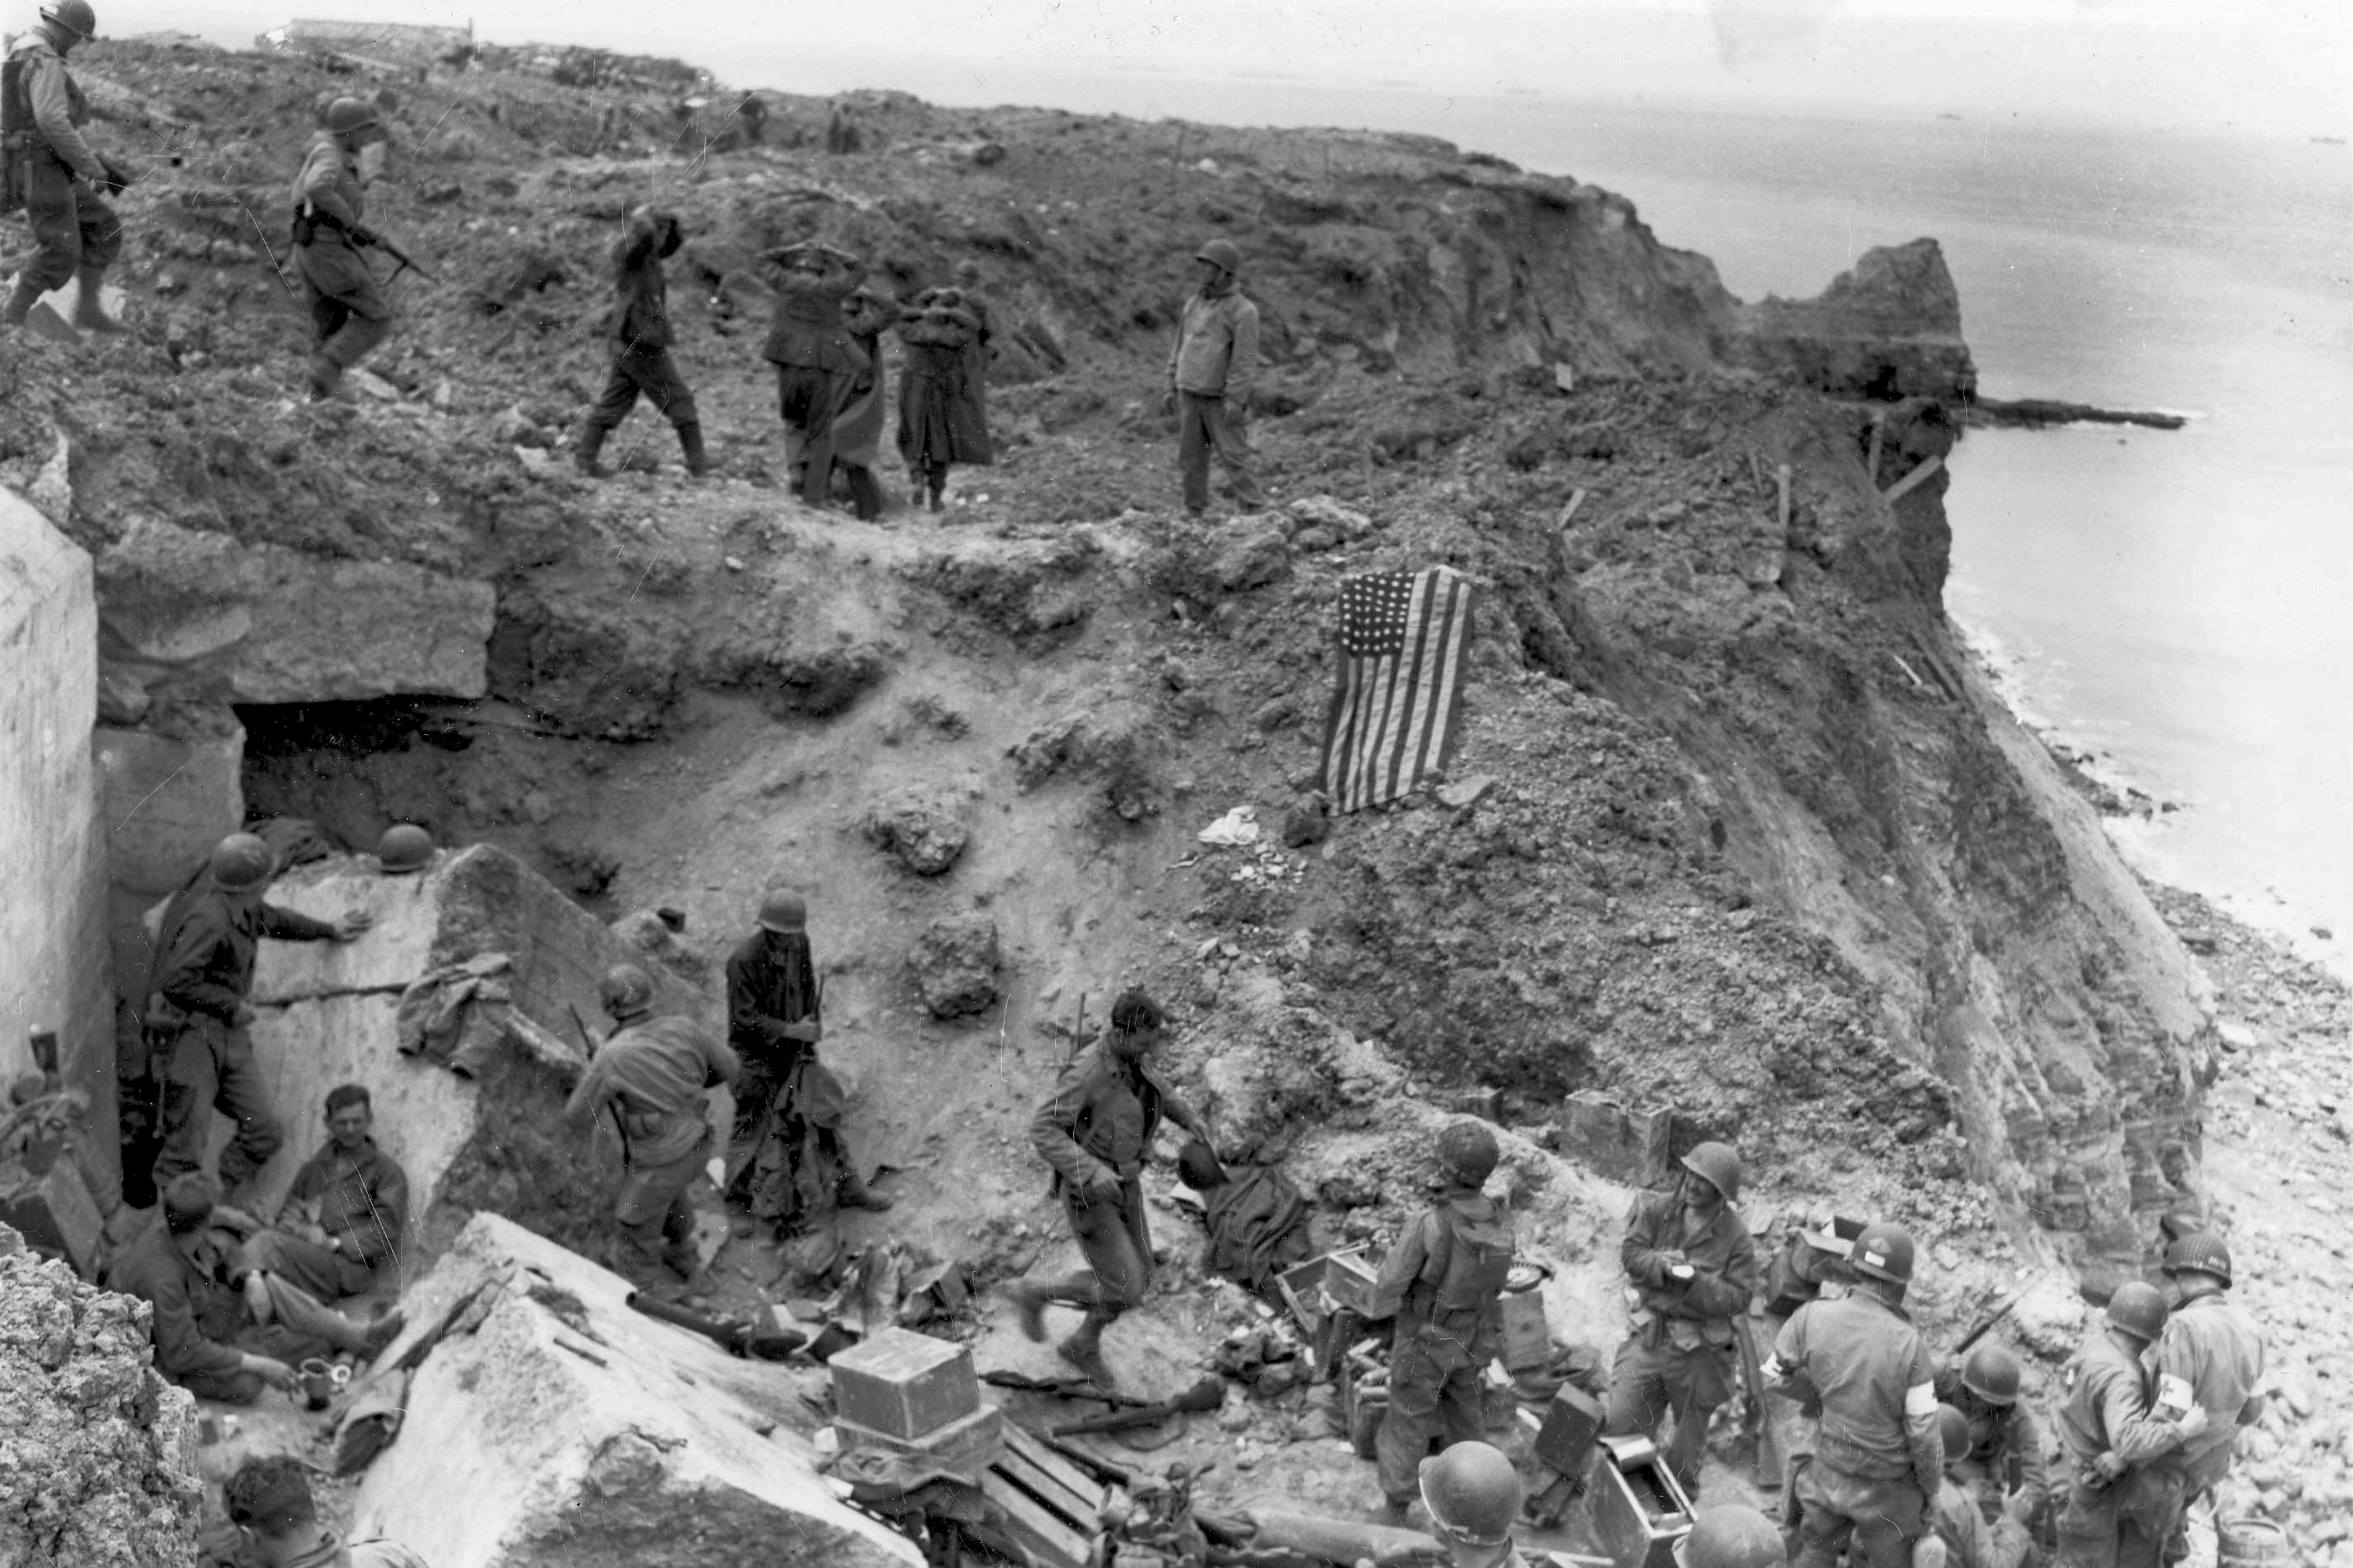 Pointe du Hoc: Was the D-Day assault by Army Rangers during